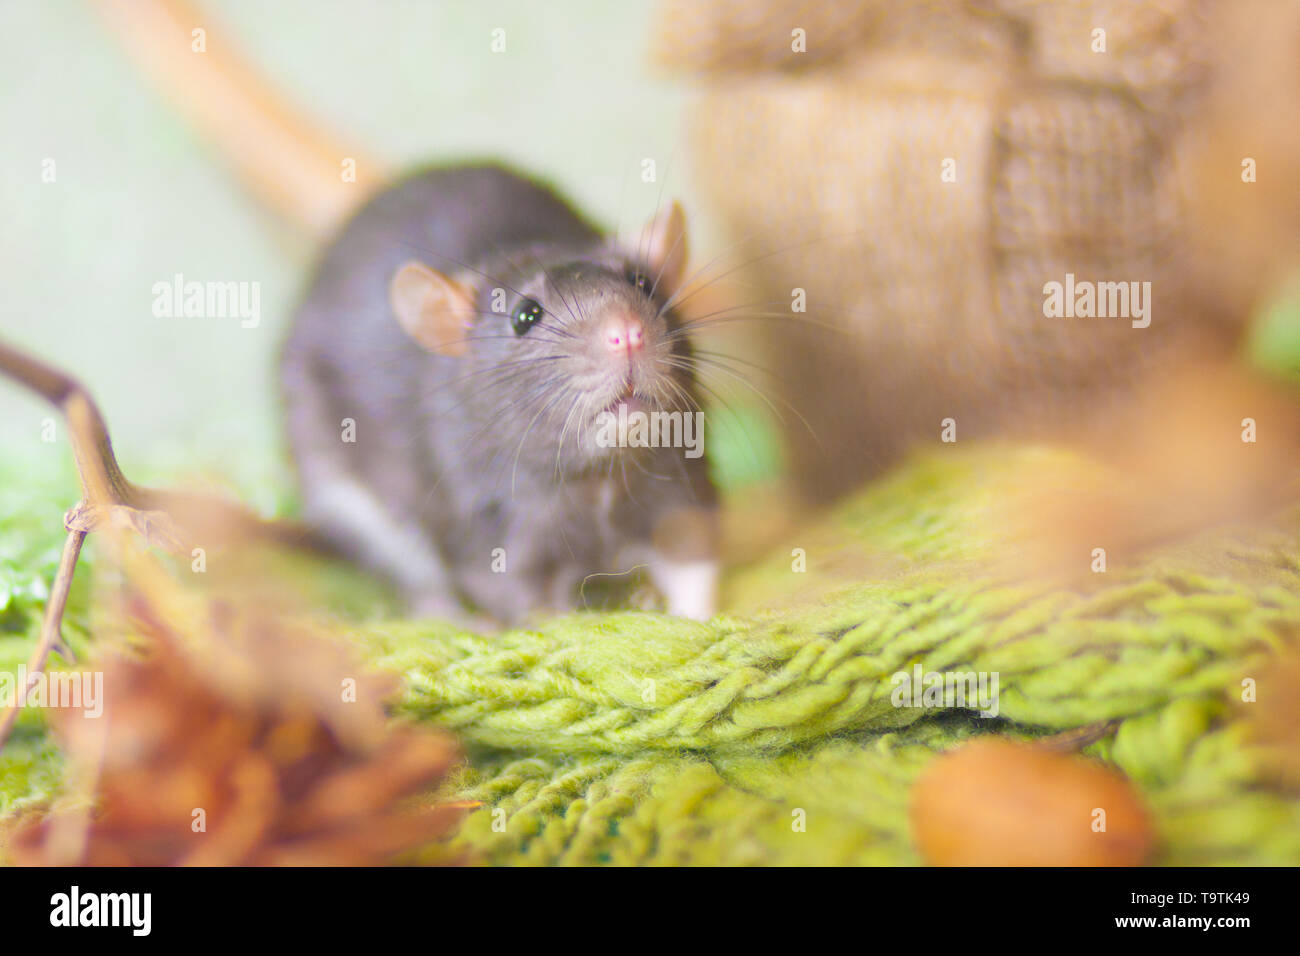 Mouse in the woods. Gray rat on the grass. Rodent on green background. - Stock Image